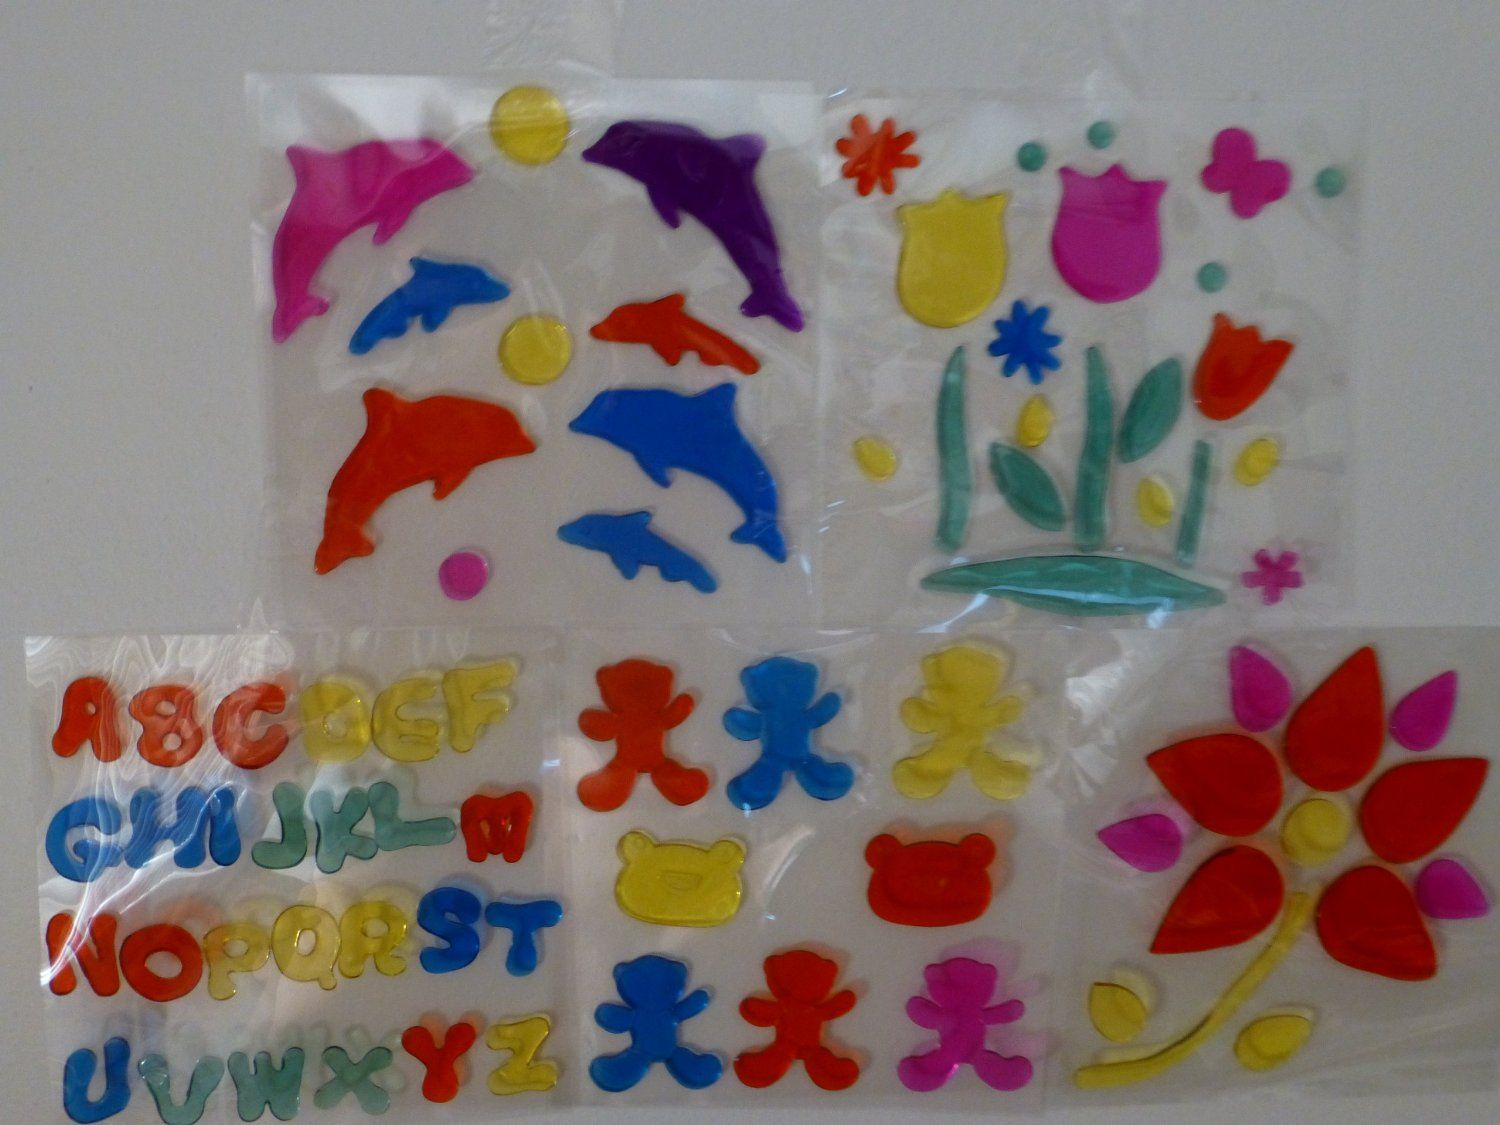 Window Gel Art, Assoterd Collection:  cool for classroom decoration and holidays